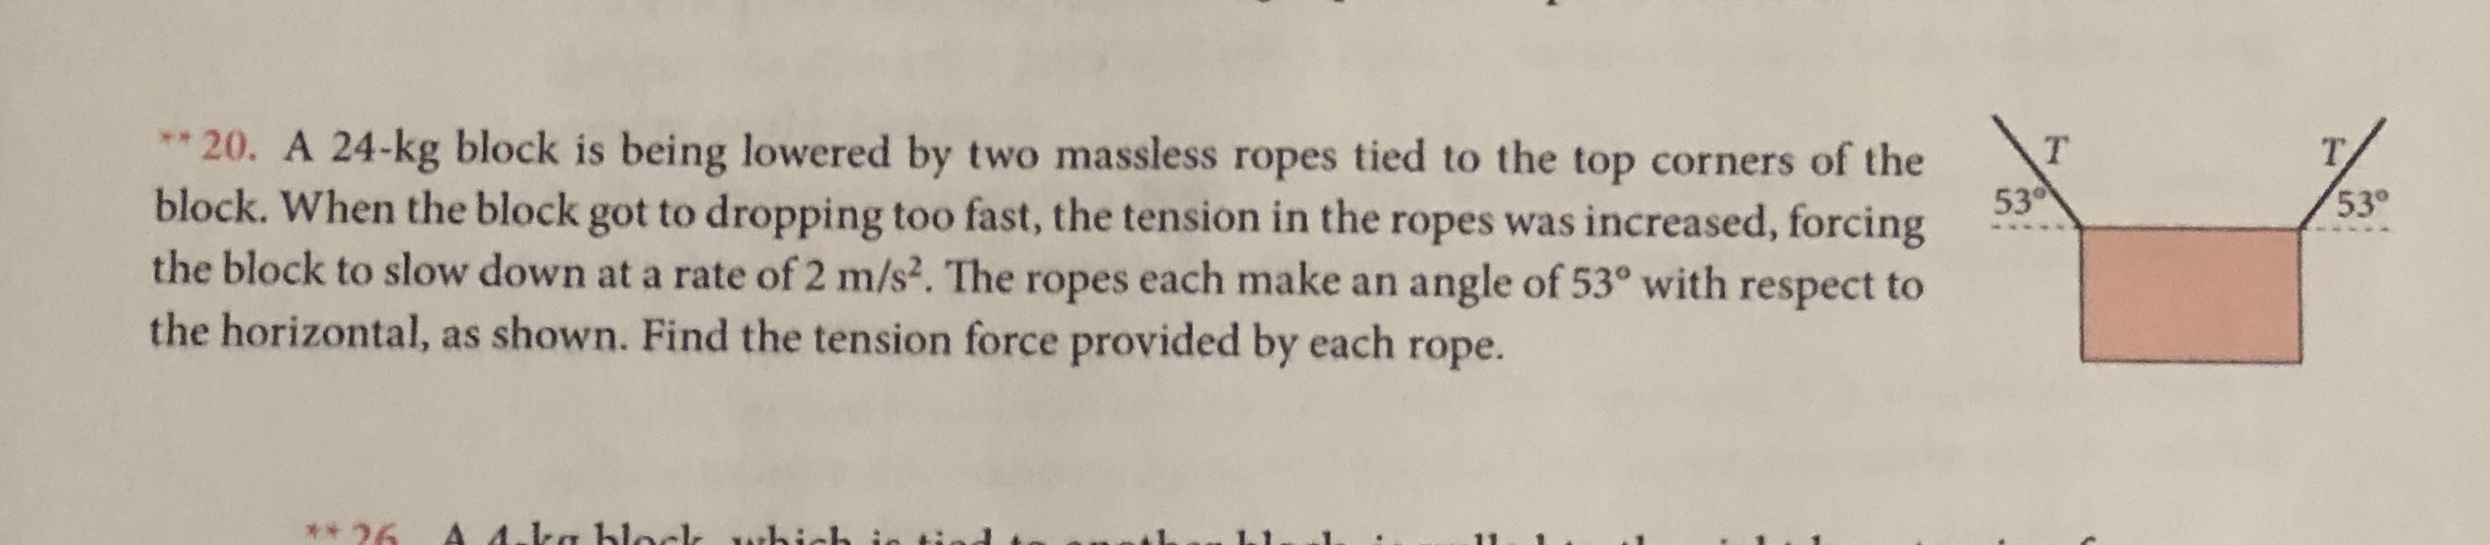 20. A 24-kg block is being lowered by two massless ropes tied to the top corners of the block. When the block got to dropping too fast, the tension in the ropes was increased, forcing the block to slow down at a rate of 2 m/s2. The ropes each make an the horizontal, as shown. Find the tension force provided by each rope. ** т Т. 530 53° angle of 53° with respect to A 4.ka hlockk whi 26